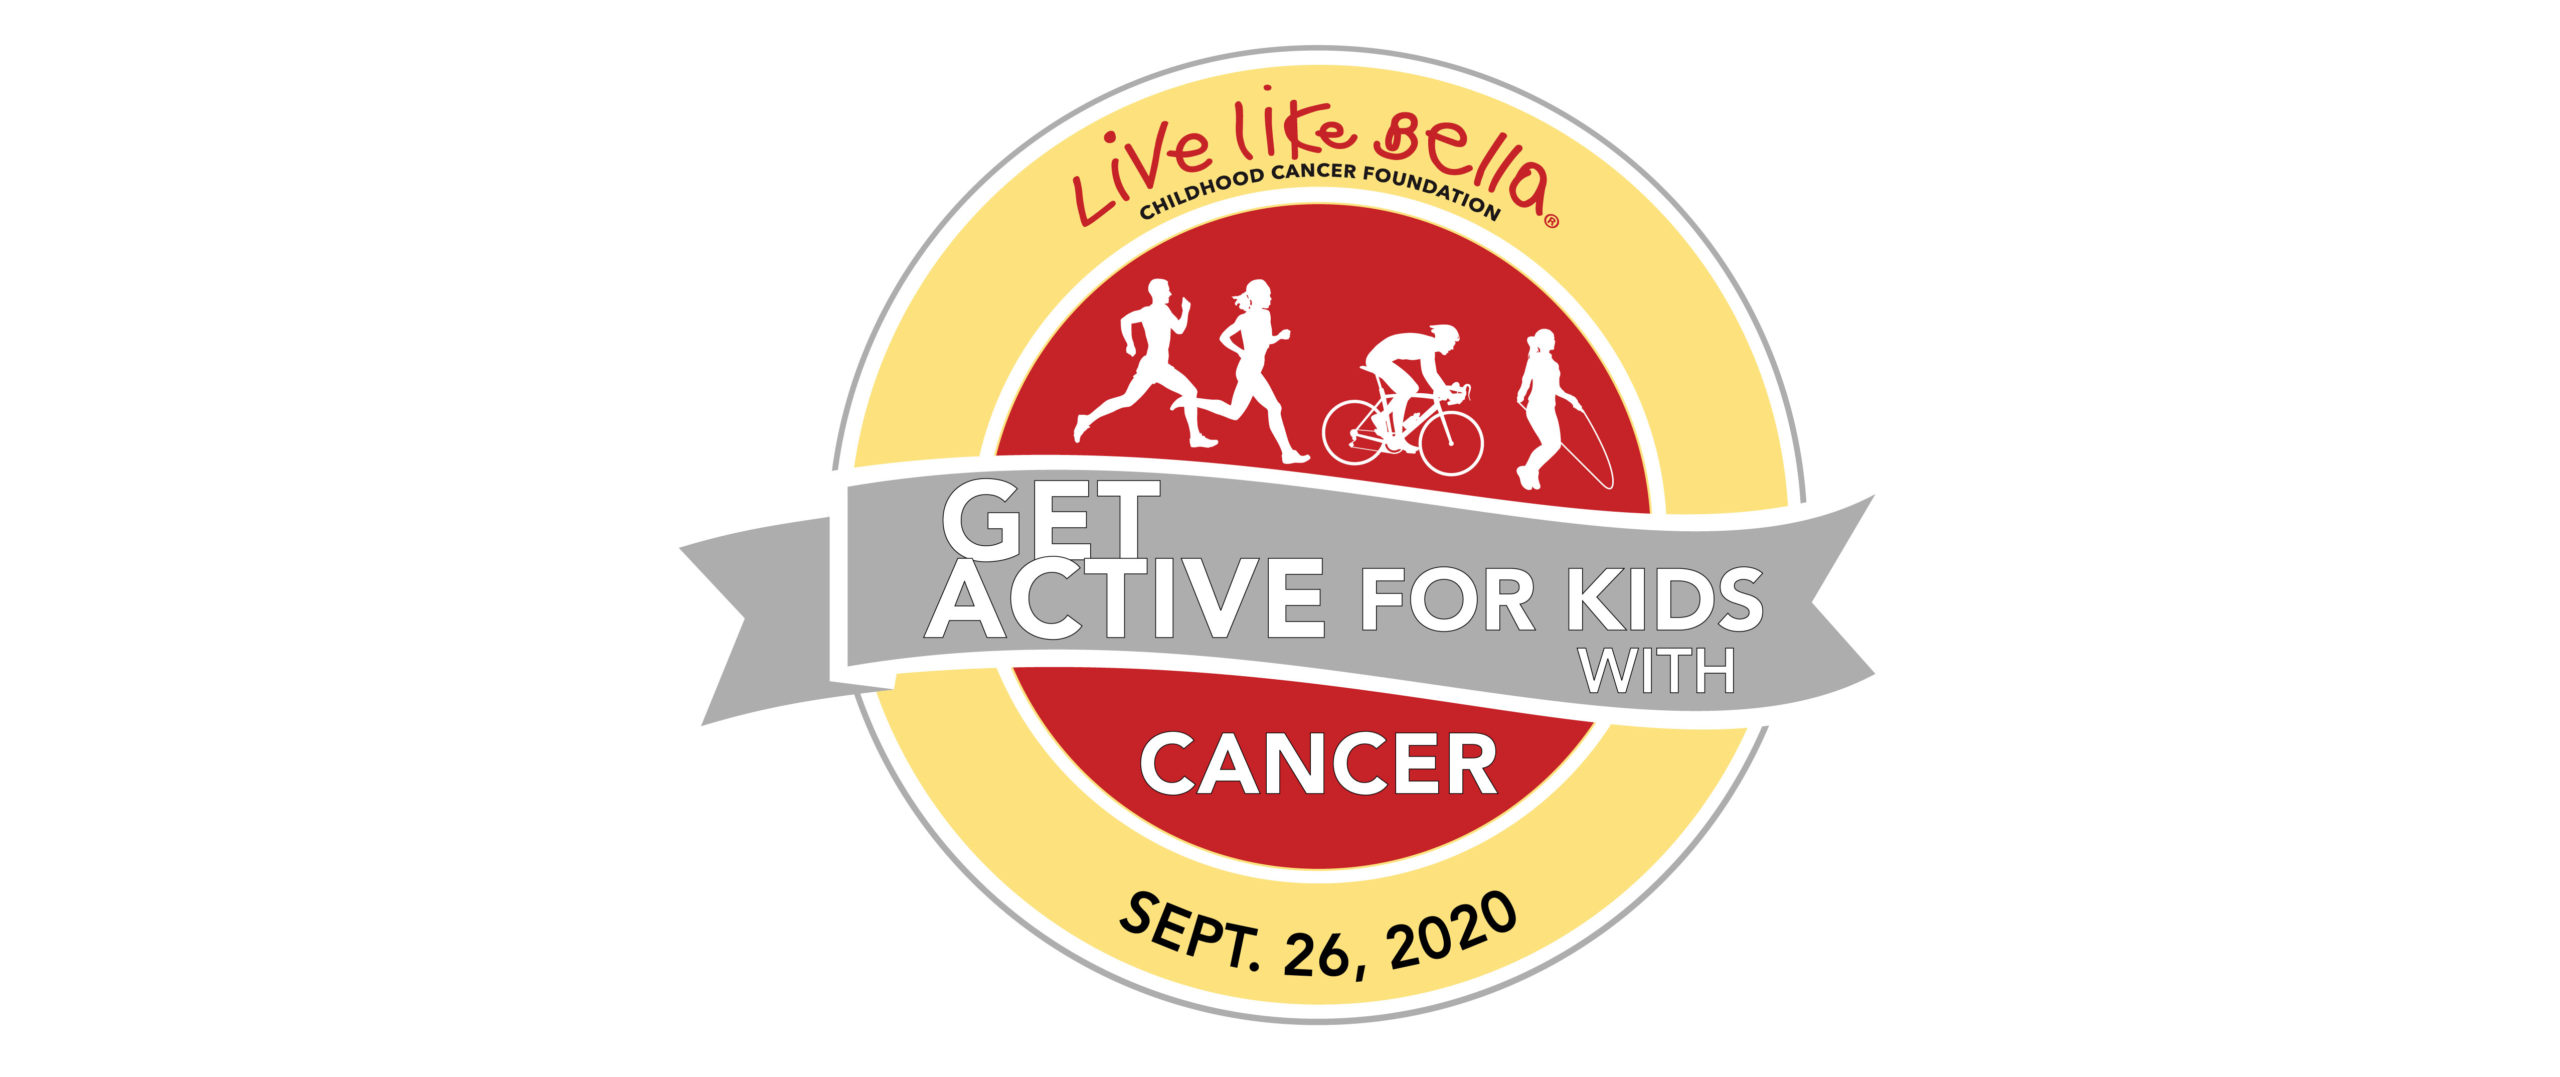 Get Active for Kids with Cancer